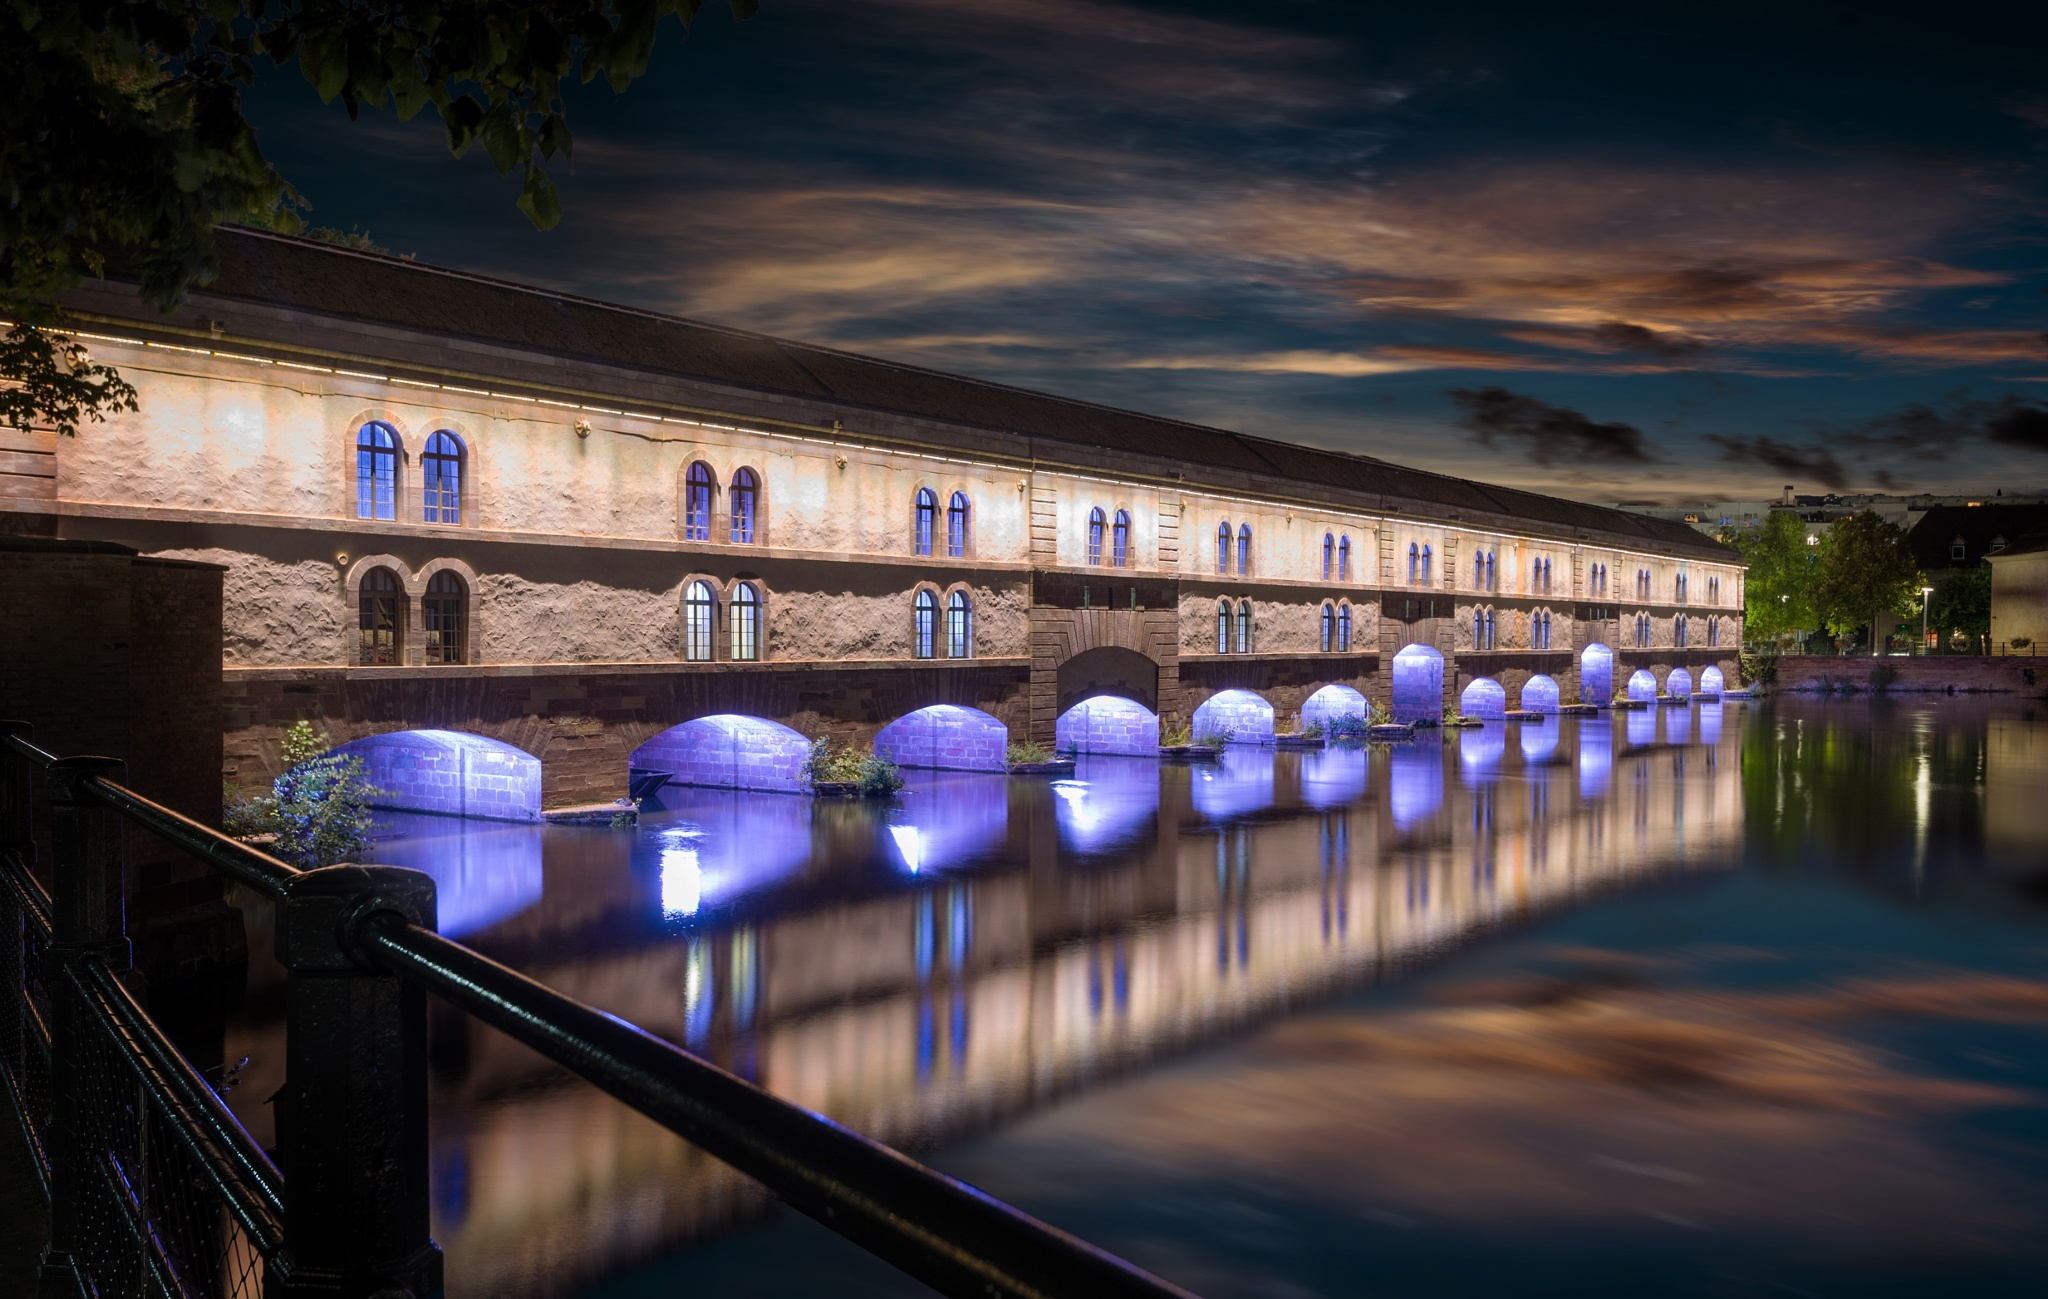 Covered Bridge, Strasbourg by Nick Moulds